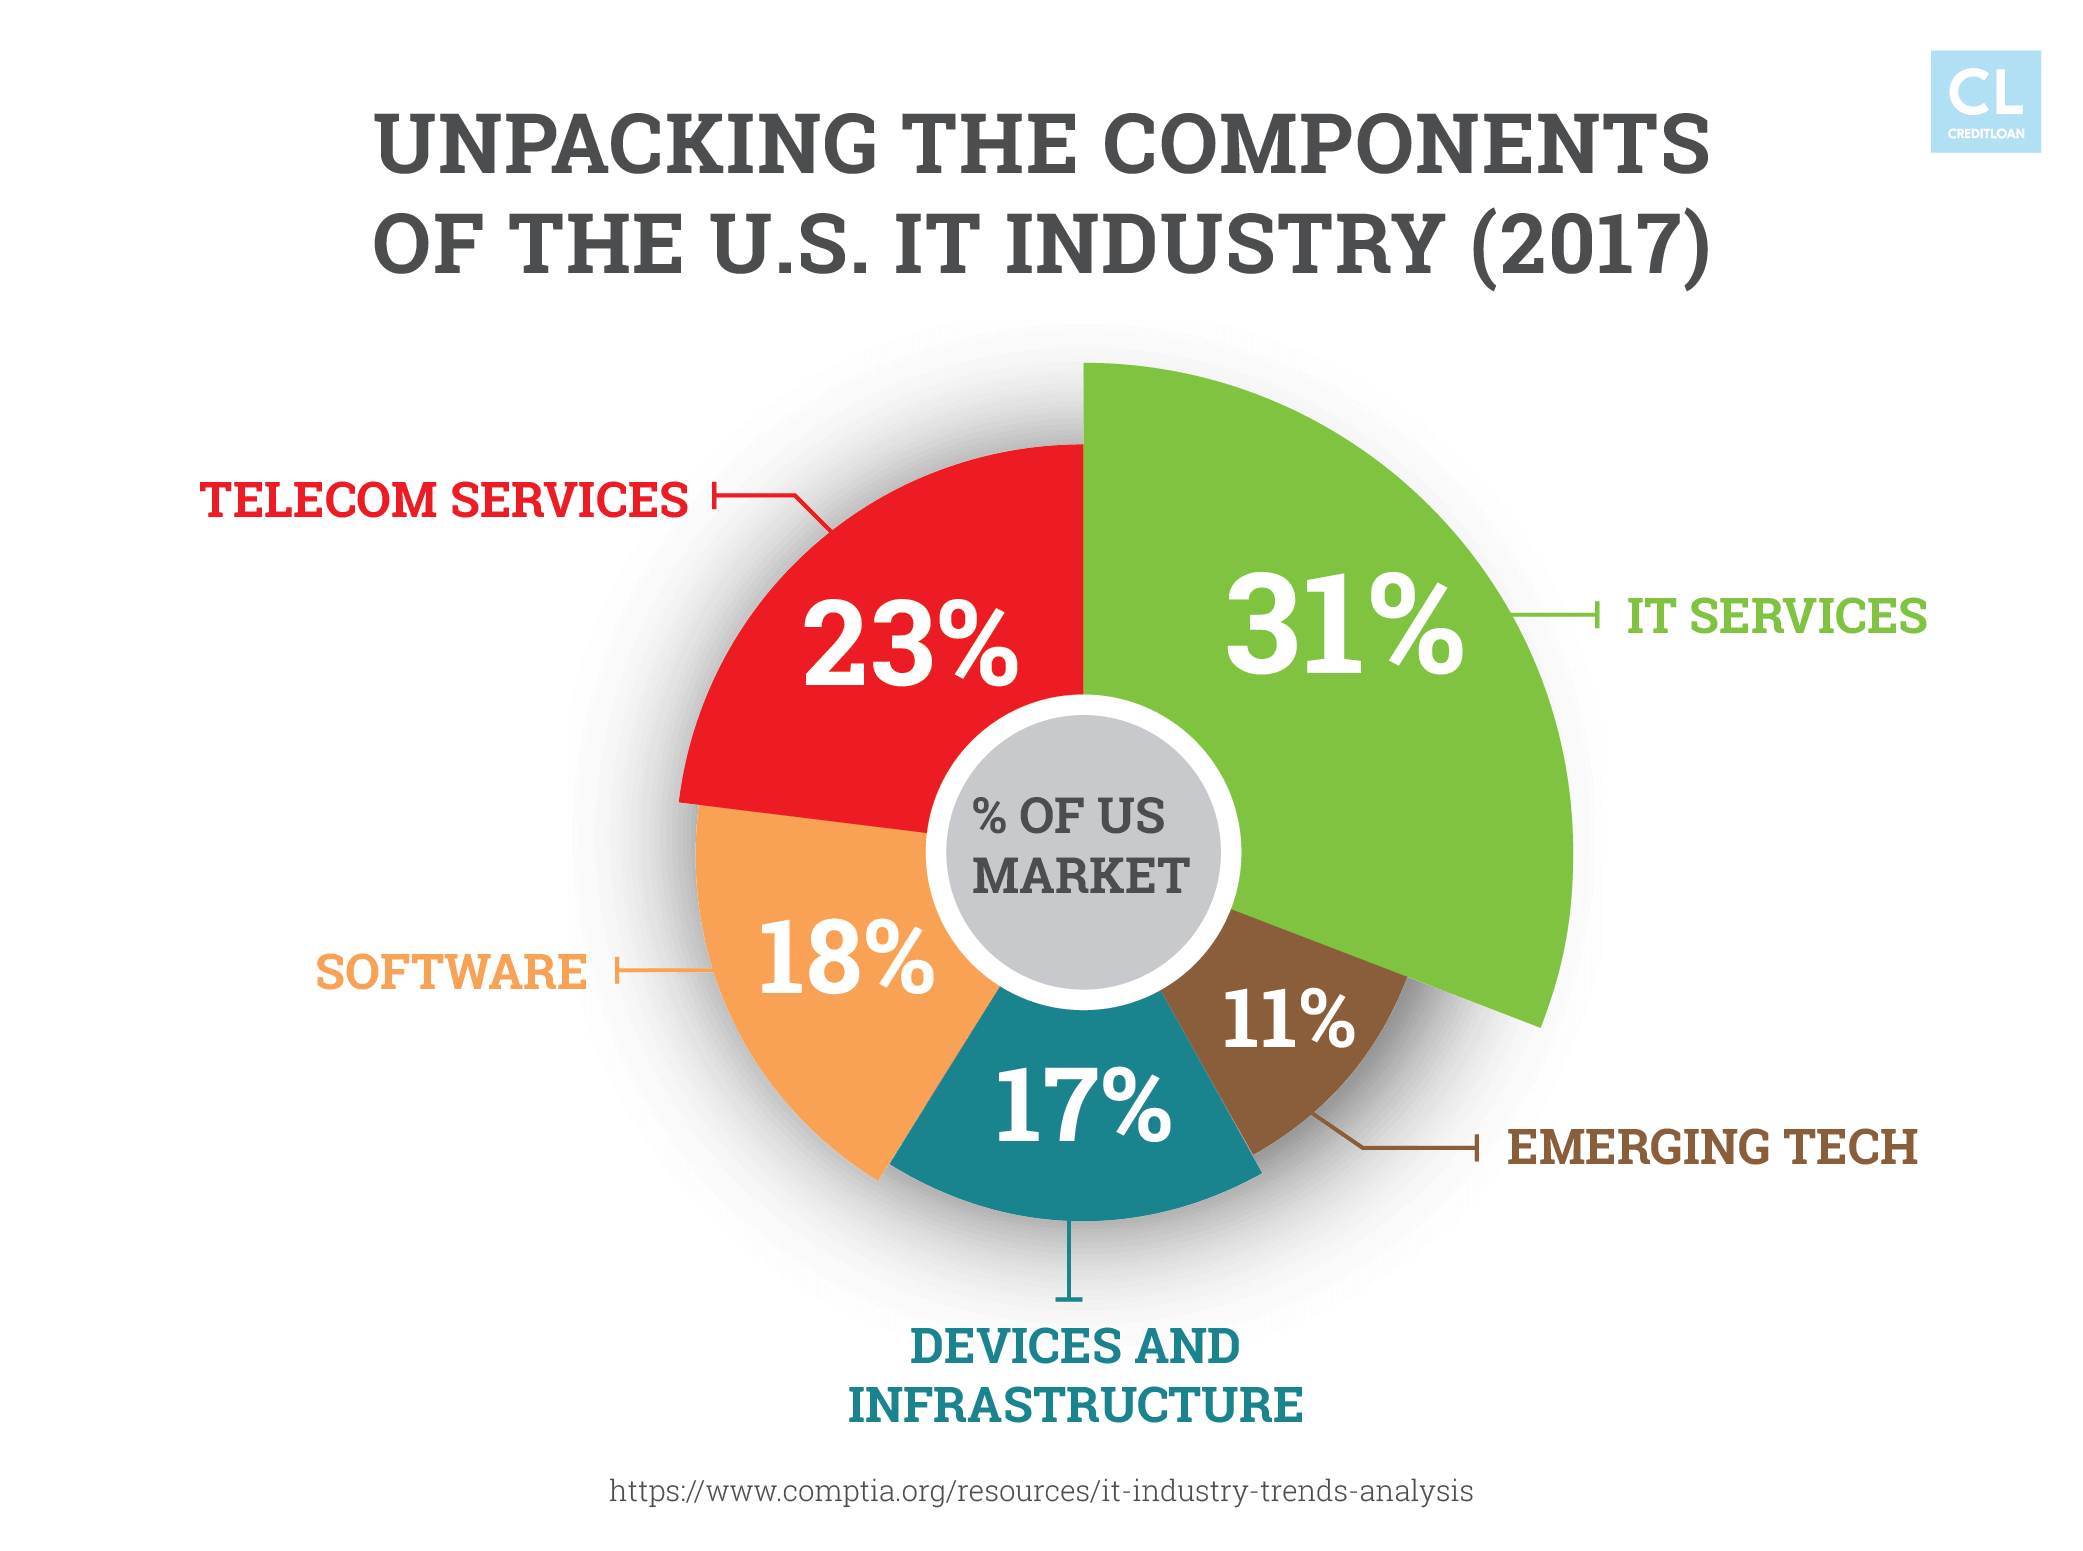 Unpacking the Components of the U.S. IT Industry (2017)